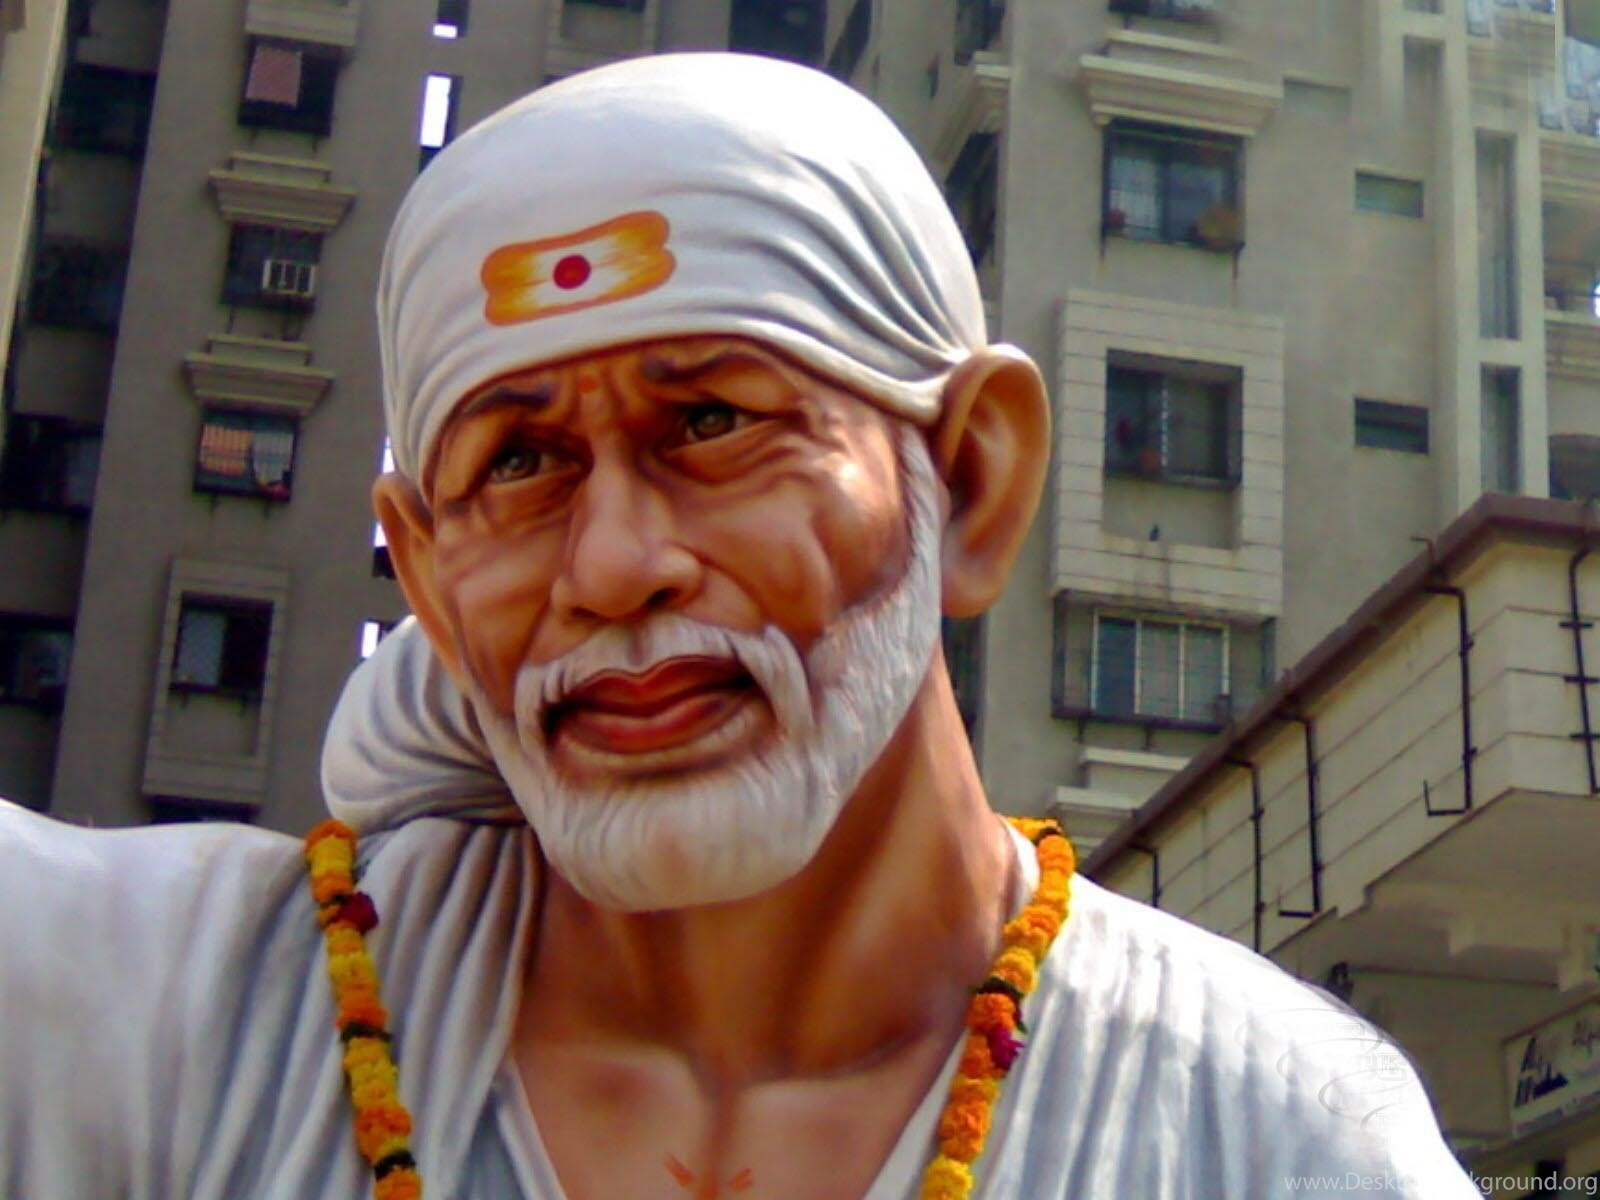 Download Sai Baba Latest Wallpapers Gallery: Sai Baba Pics, Photos & HD Wallpapers Download Desktop